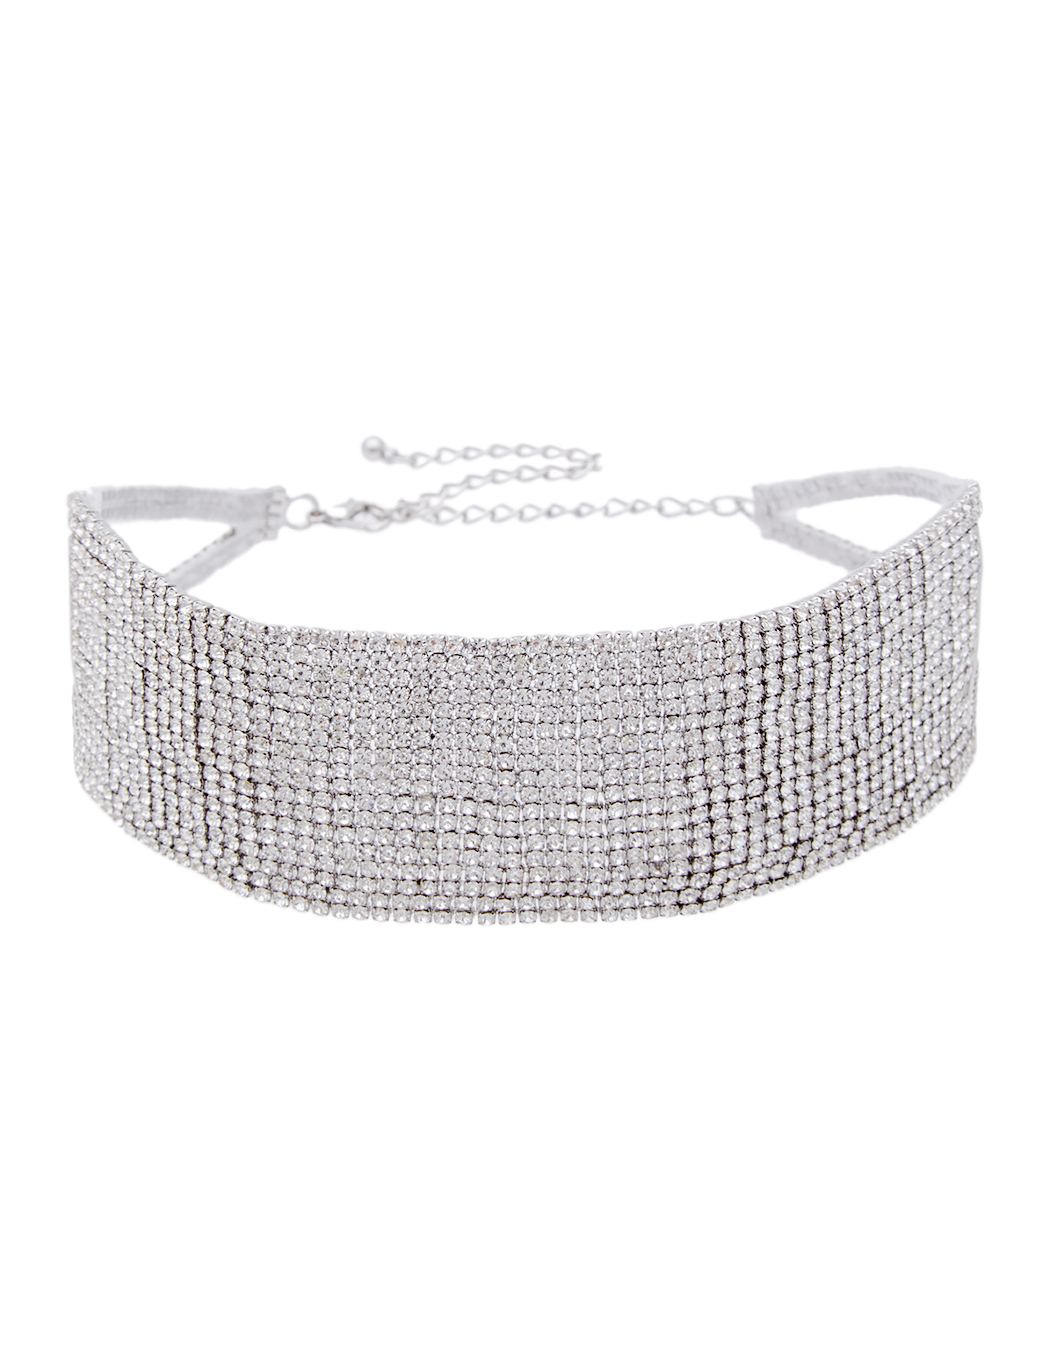 Crystal Statement Choker Necklace